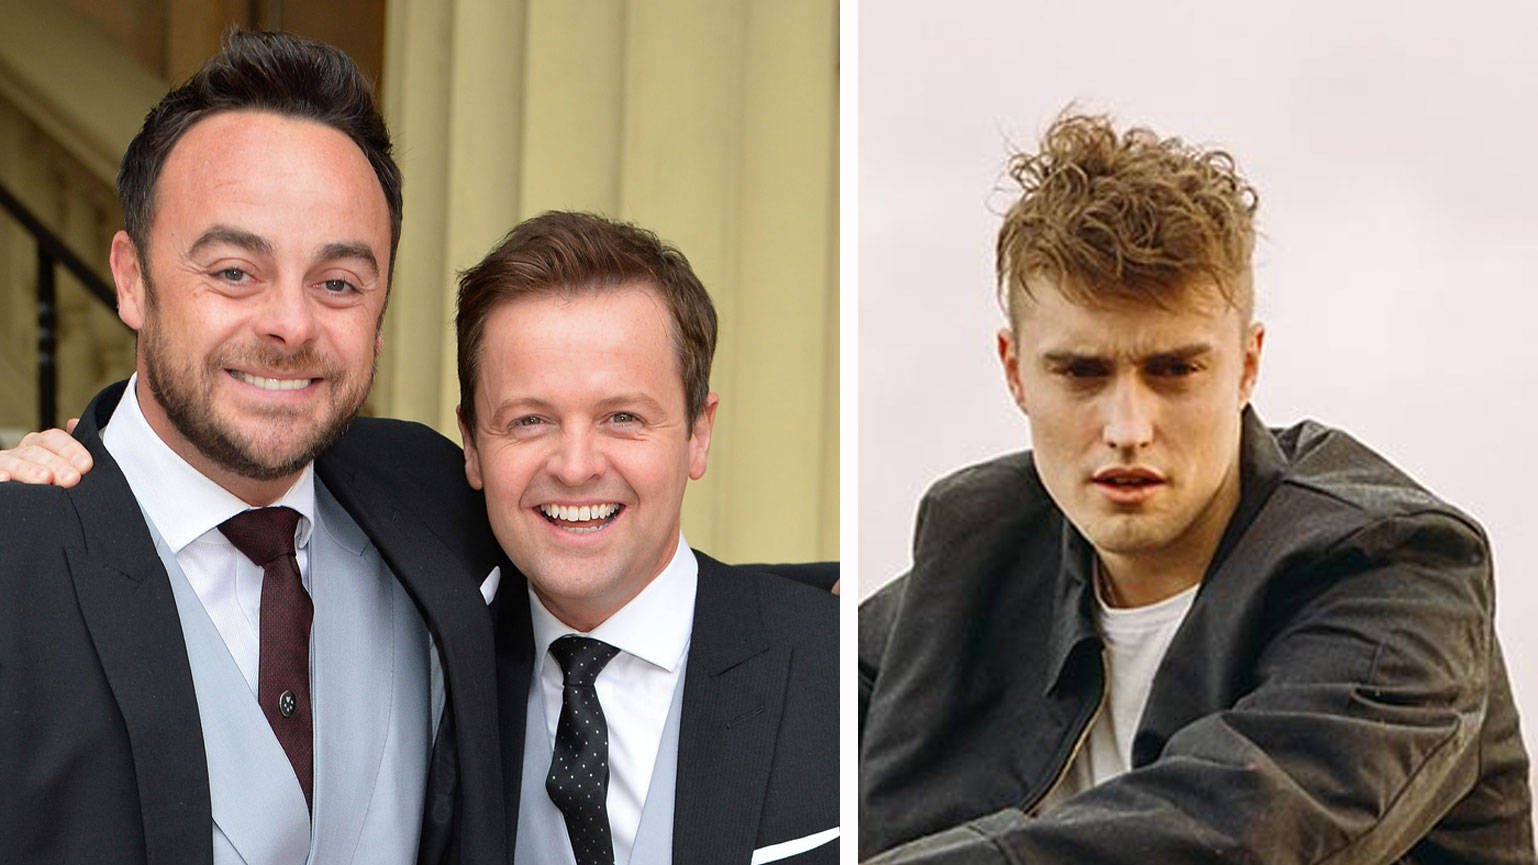 Ant and Dec praise Sam Fender ahead of Hypersonic Missiles album release